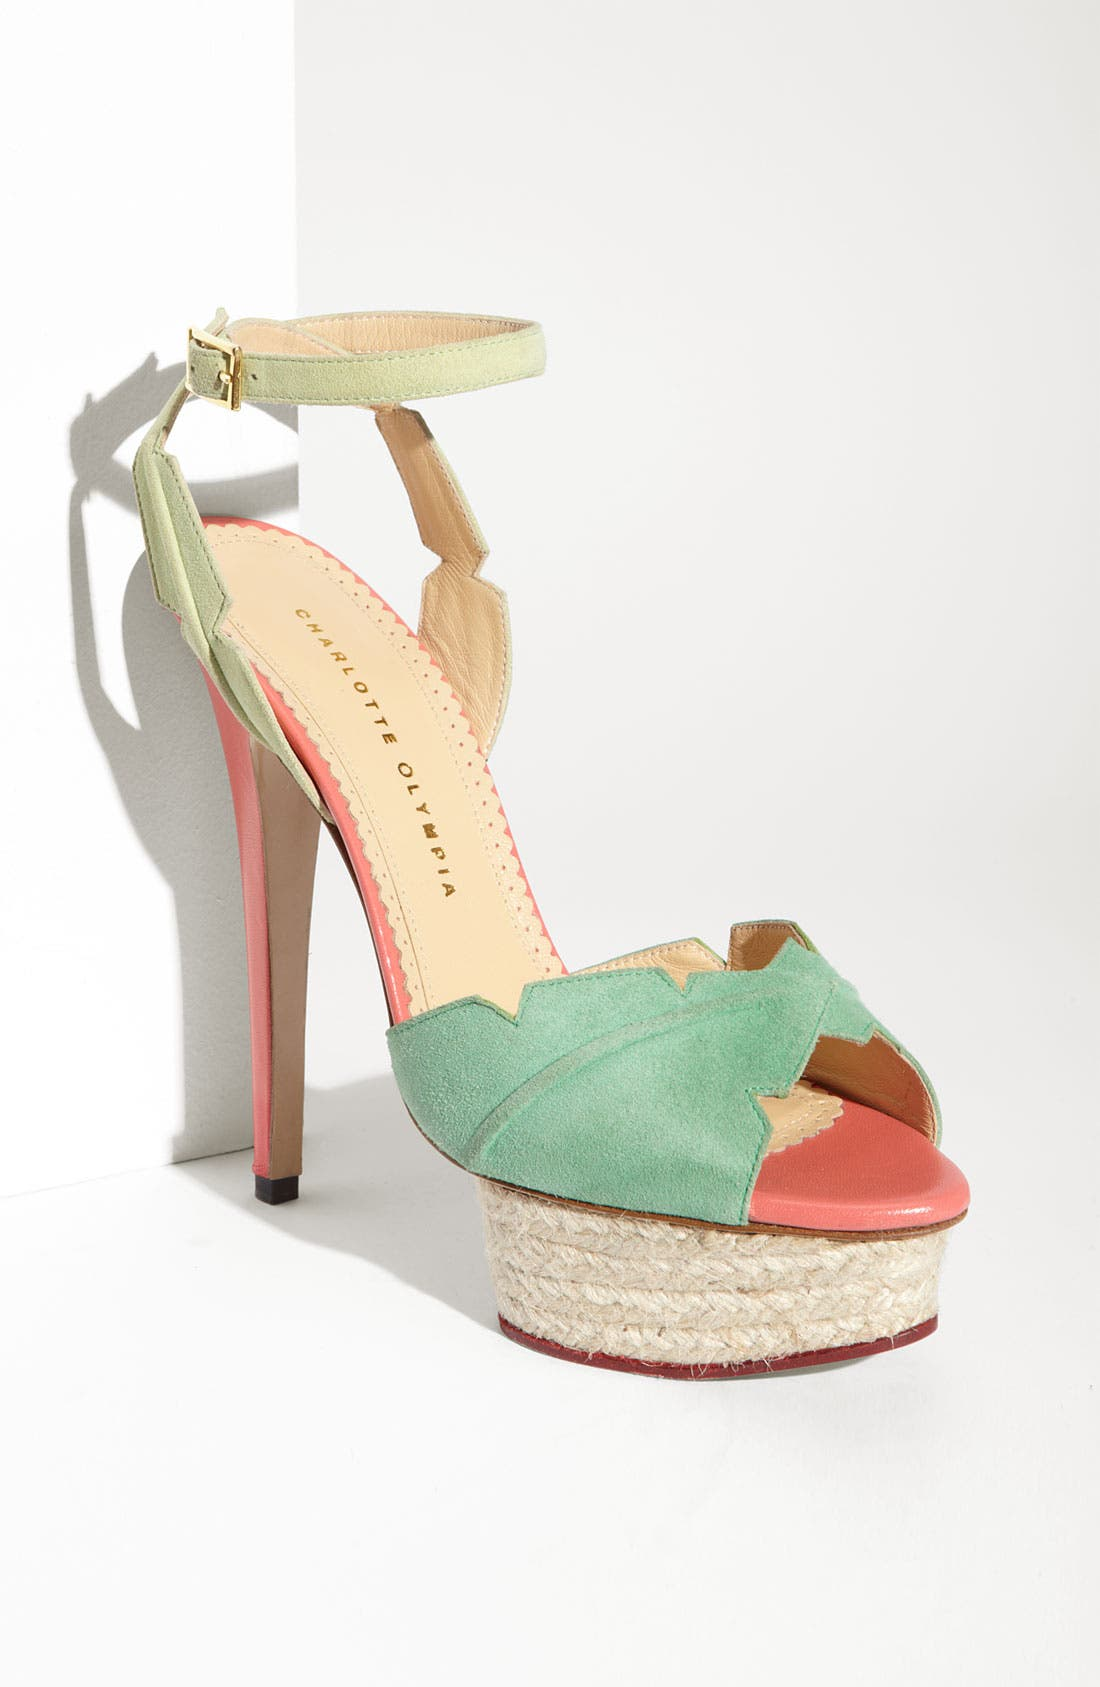 Alternate Image 1 Selected - Charlotte Olympia 'Isla' Sandal